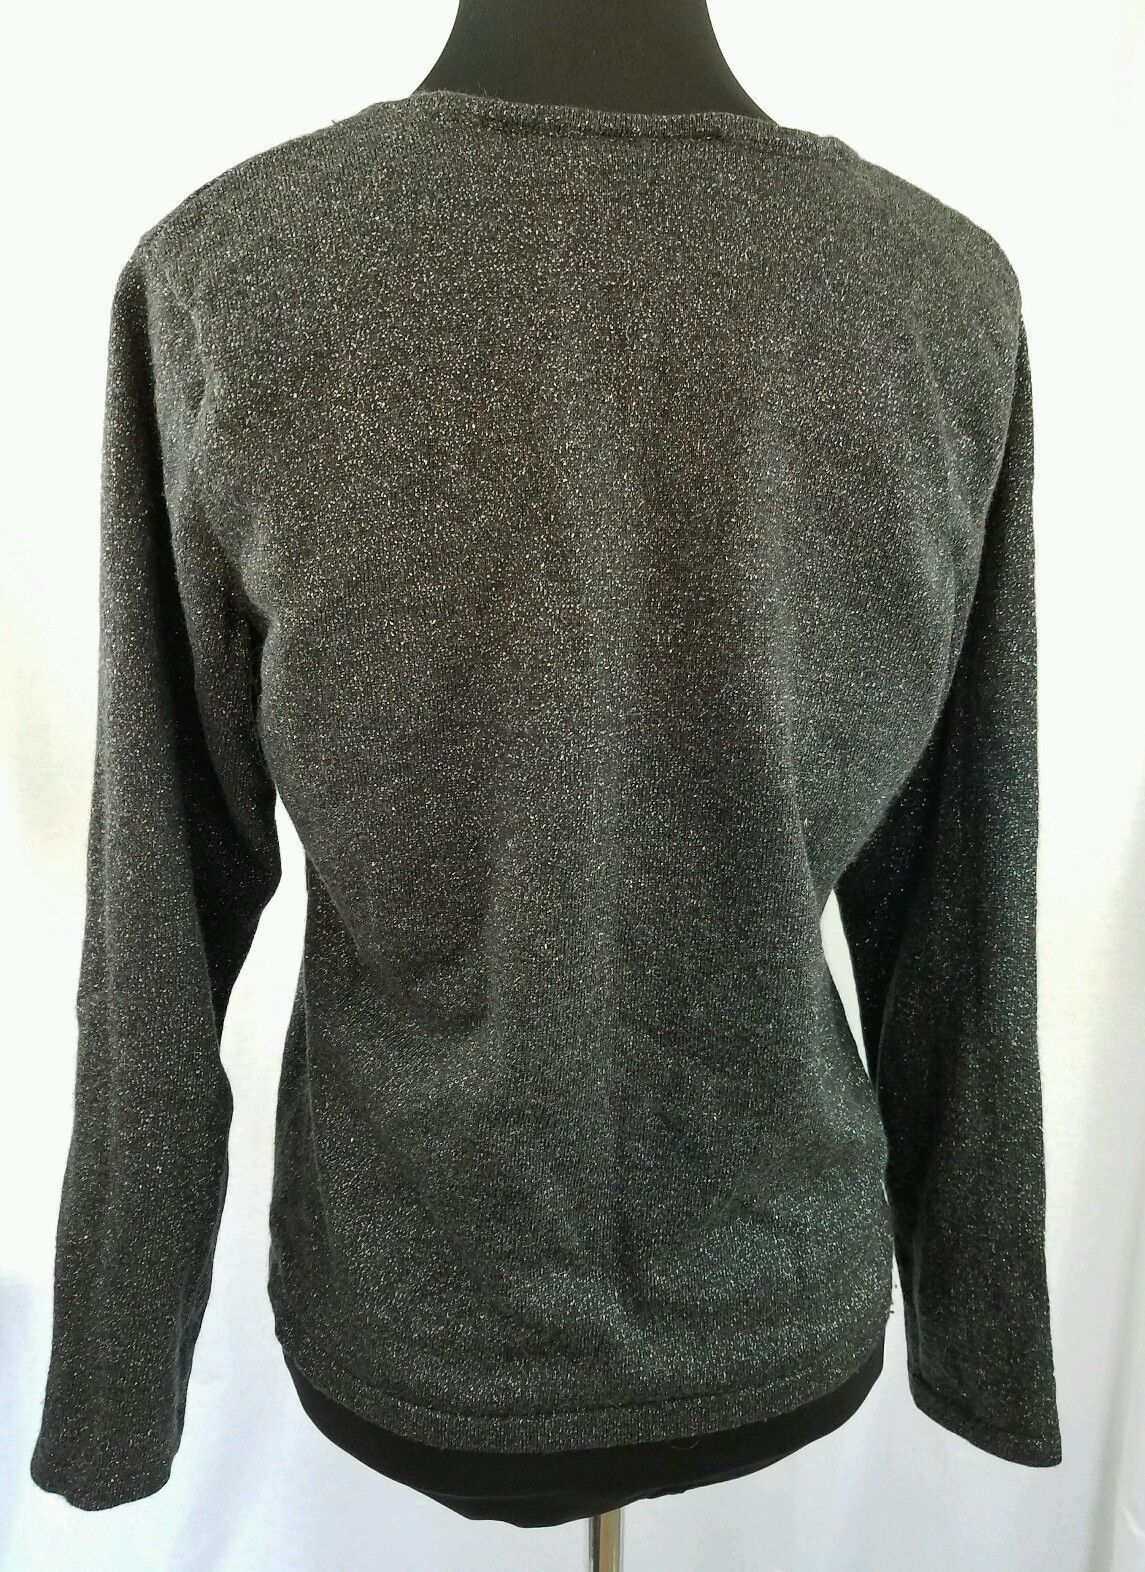 Black Knit Top With Silver Flecks Adds Shimmer Holiday Top Talbots Size Med